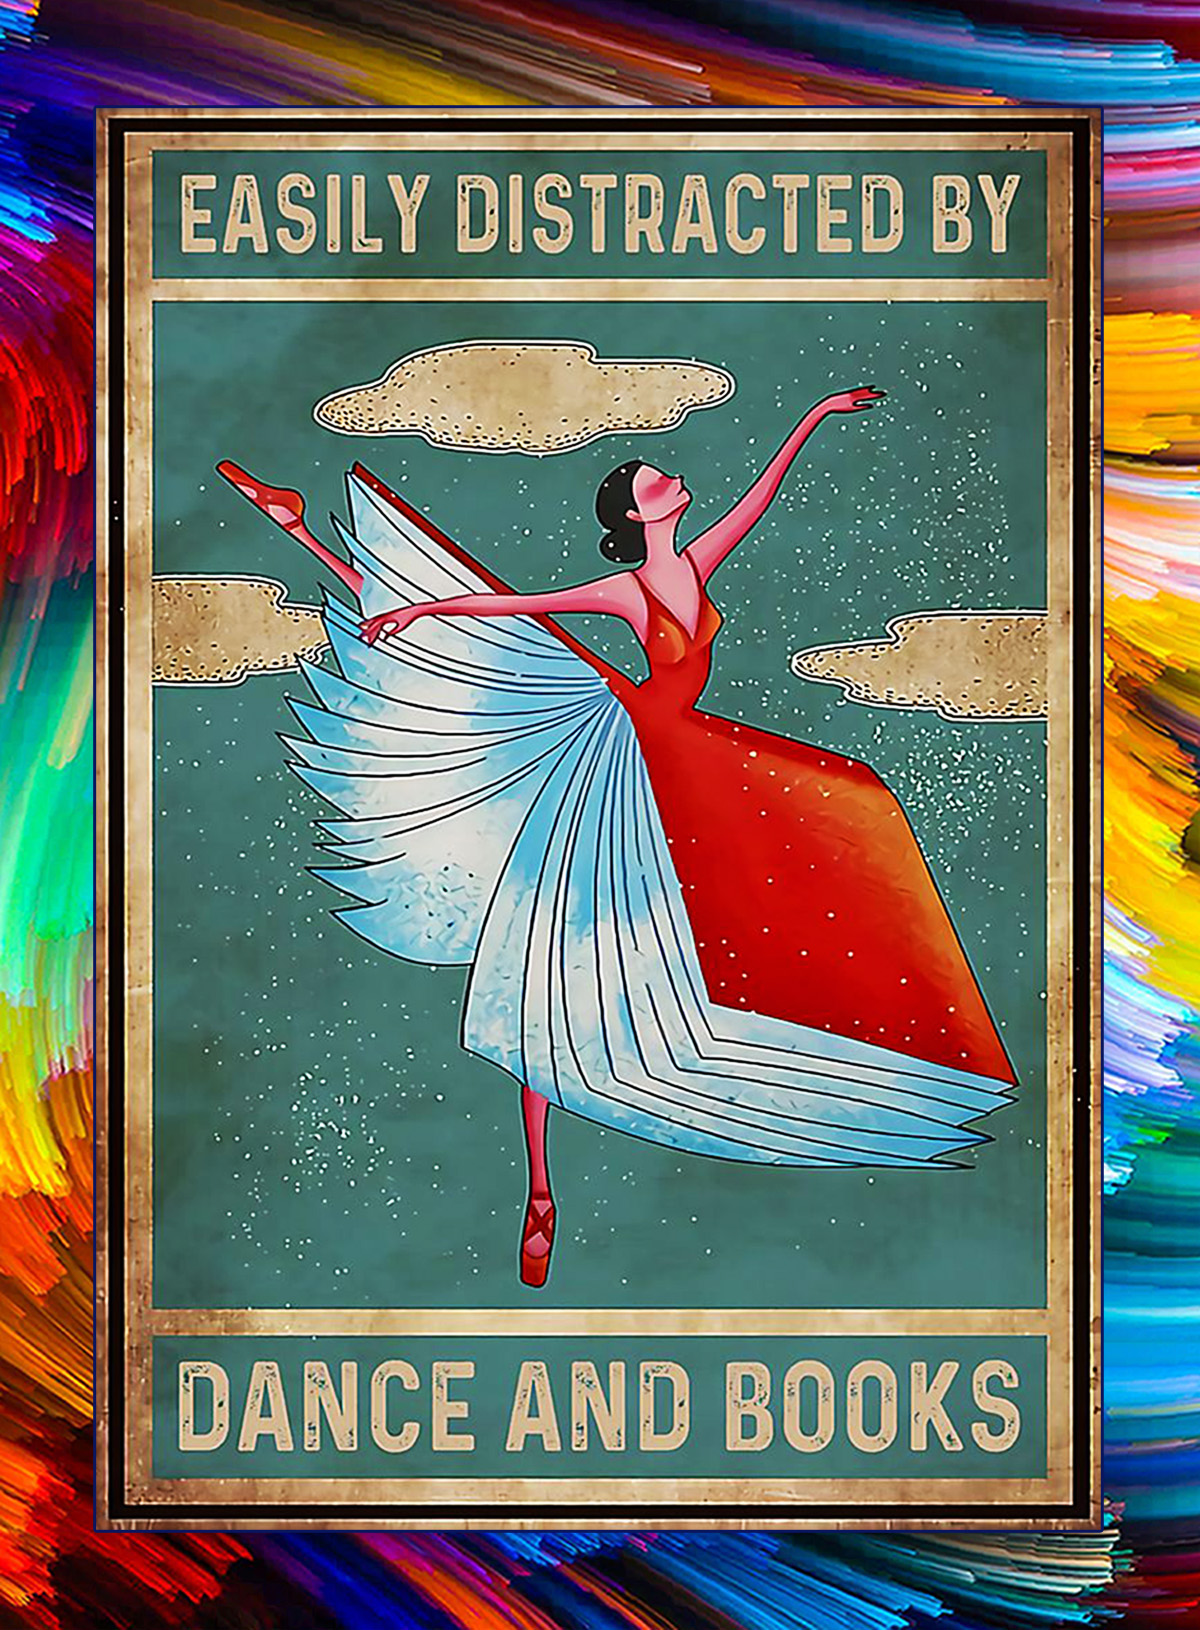 Easily distracted by dance and books poster - A1